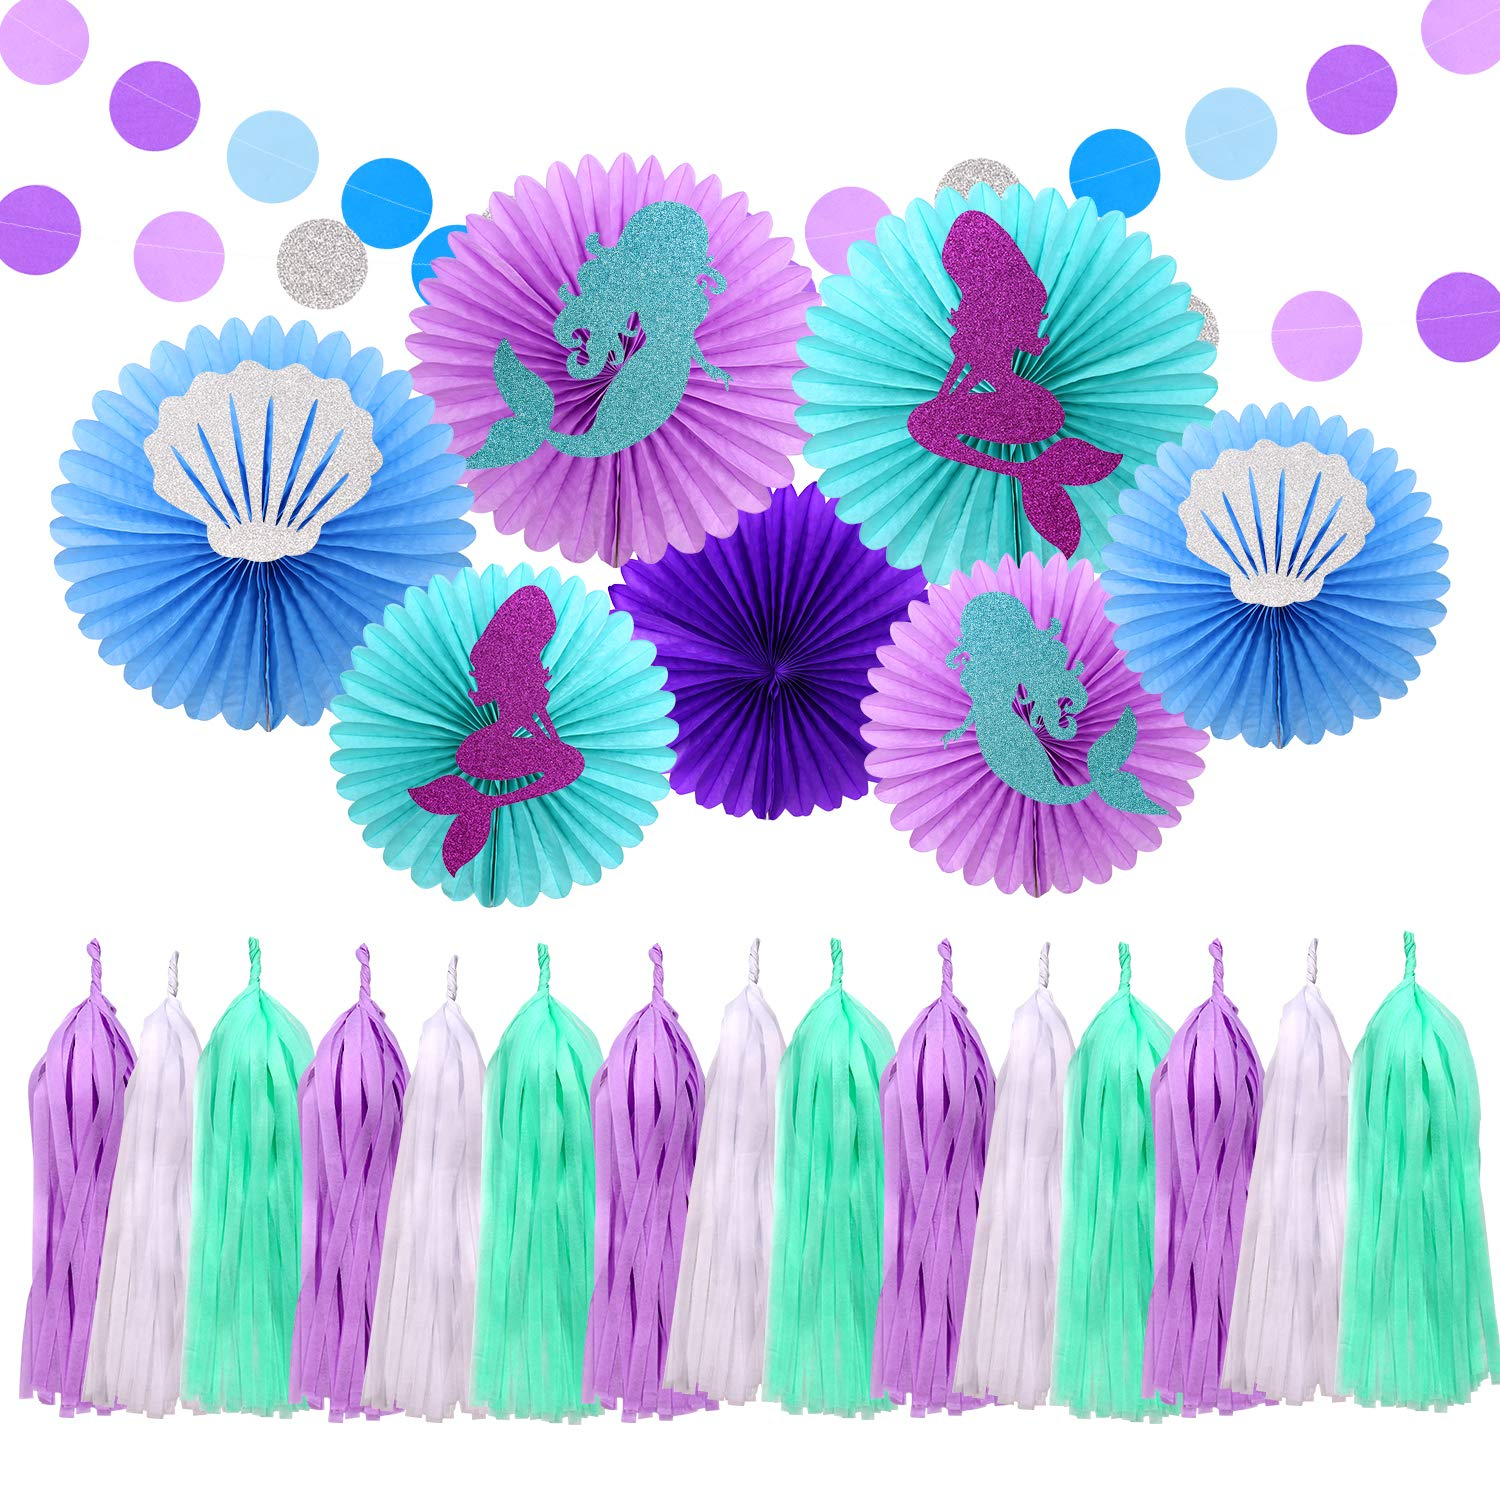 Mermaid Party Decoration Kit Tissue Paper Fan Purple and Blue Dots Garland Under The Sea Themed Birthday Baby Shower Bridal Wedding Party Supplies SIFAN